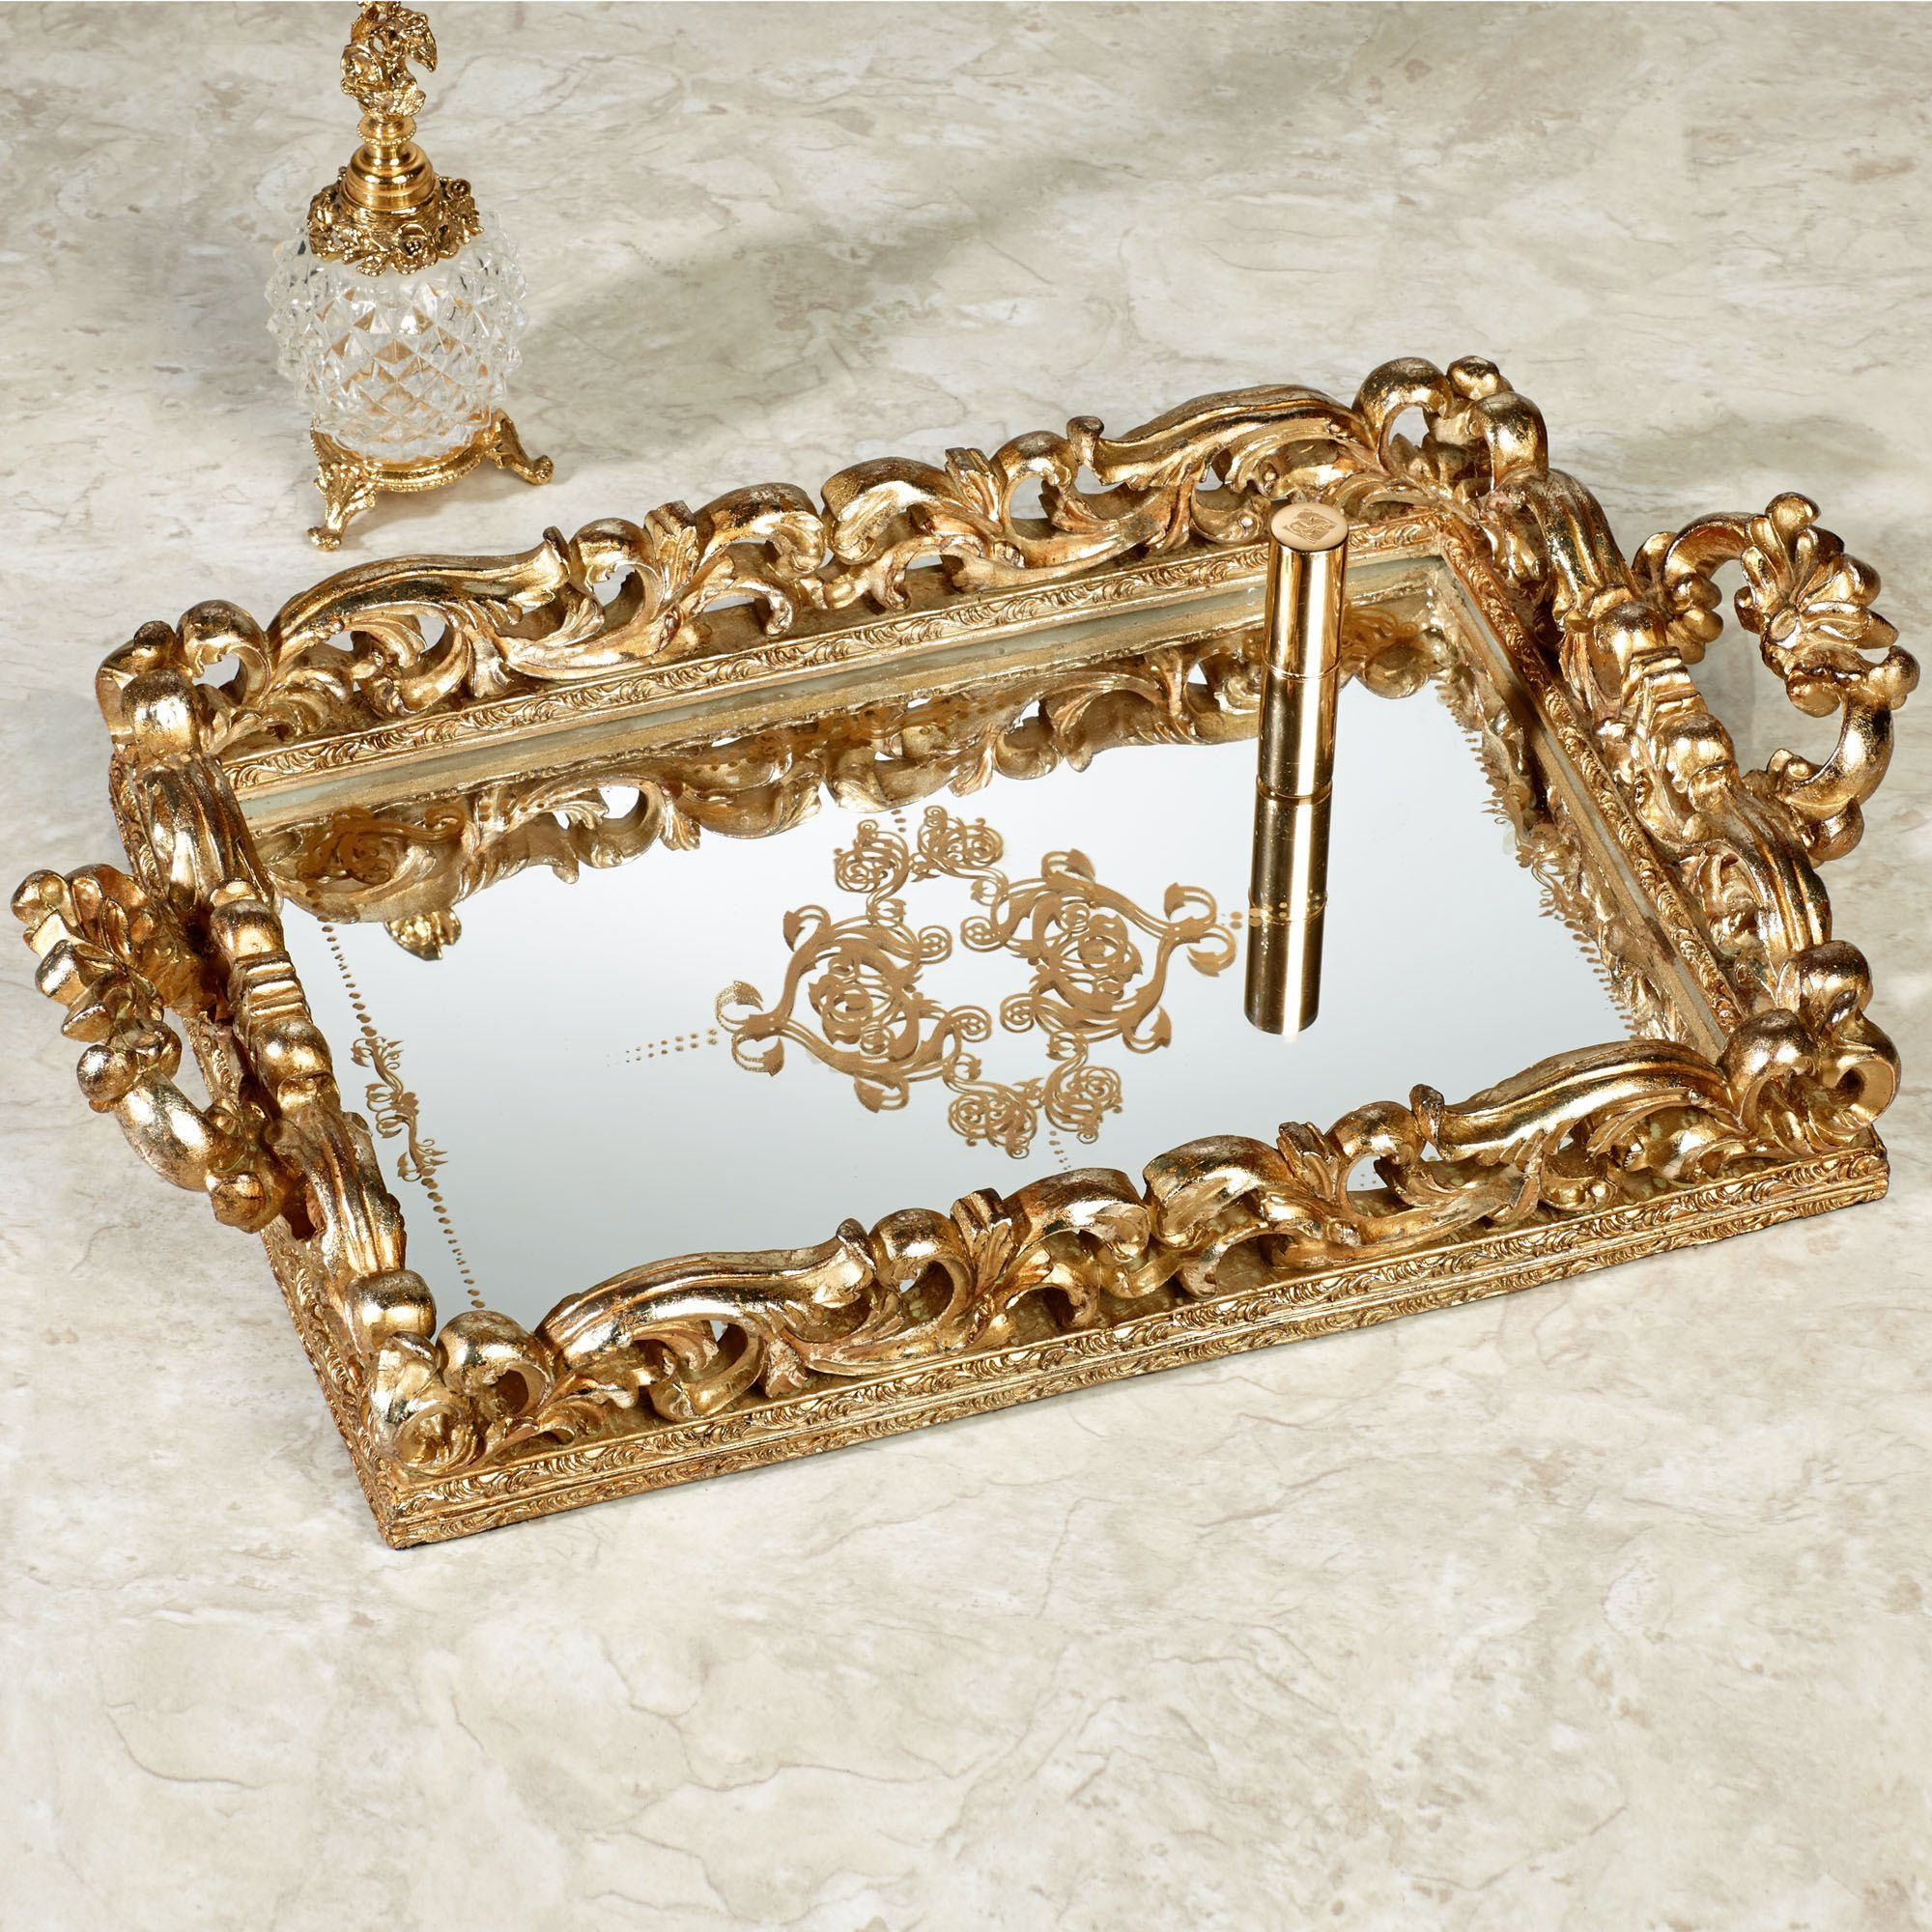 Extravagant golden design mirror tray with modern design